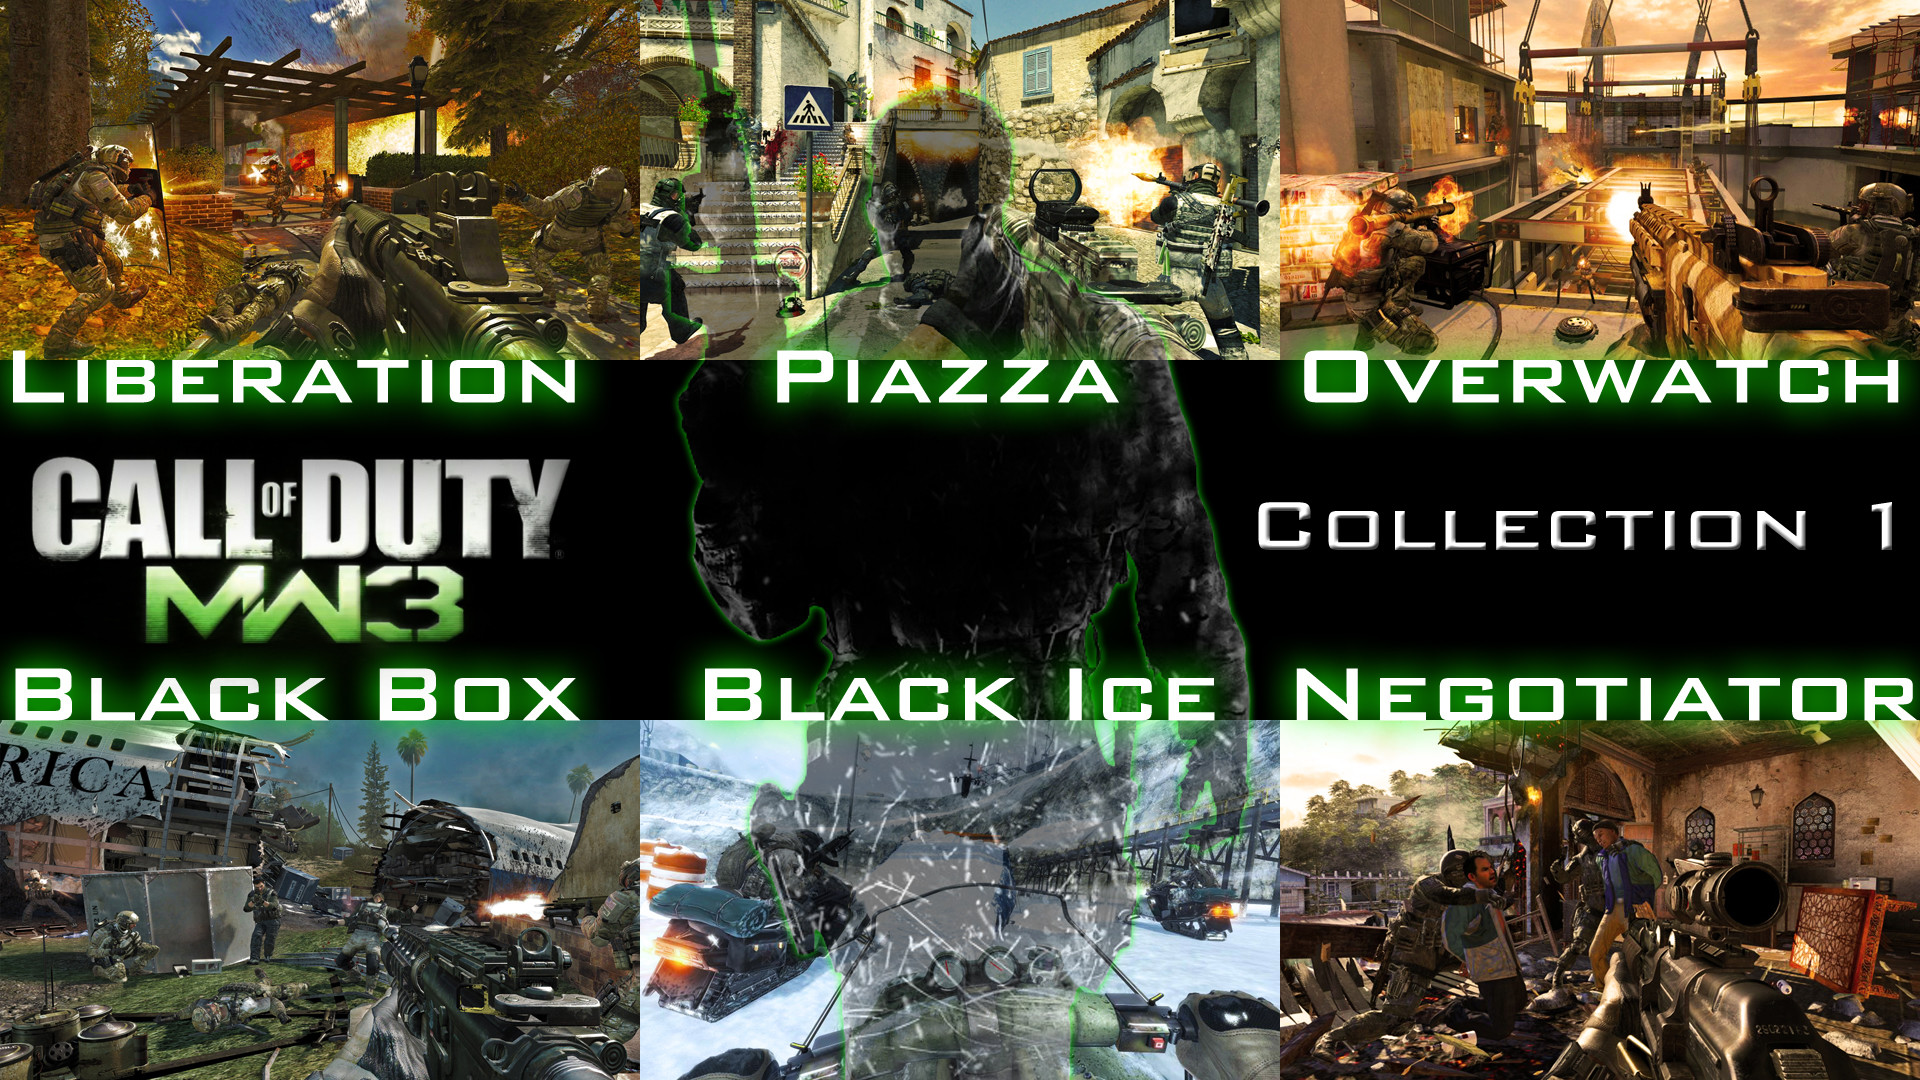 … Call of Duty MW3 Collection 1 Wallpaper by X-NEON-98-X